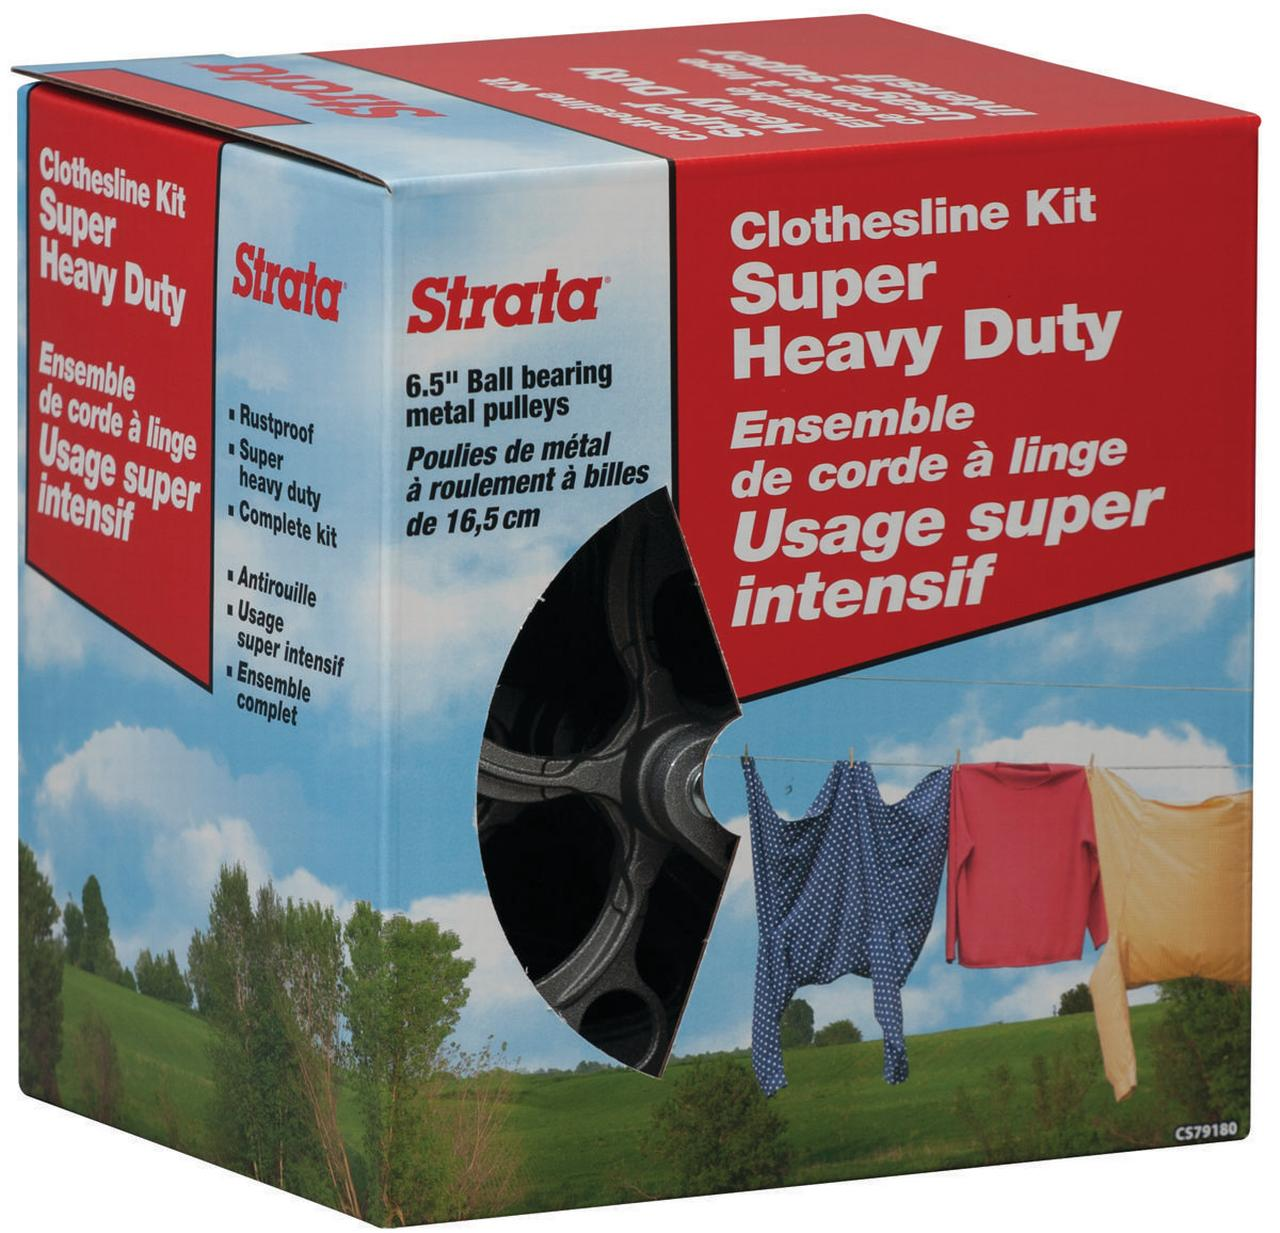 Strata Ben-Mor CS79180 Super Heavy Duty Clothesline Kit, Galvanized Steel Cable